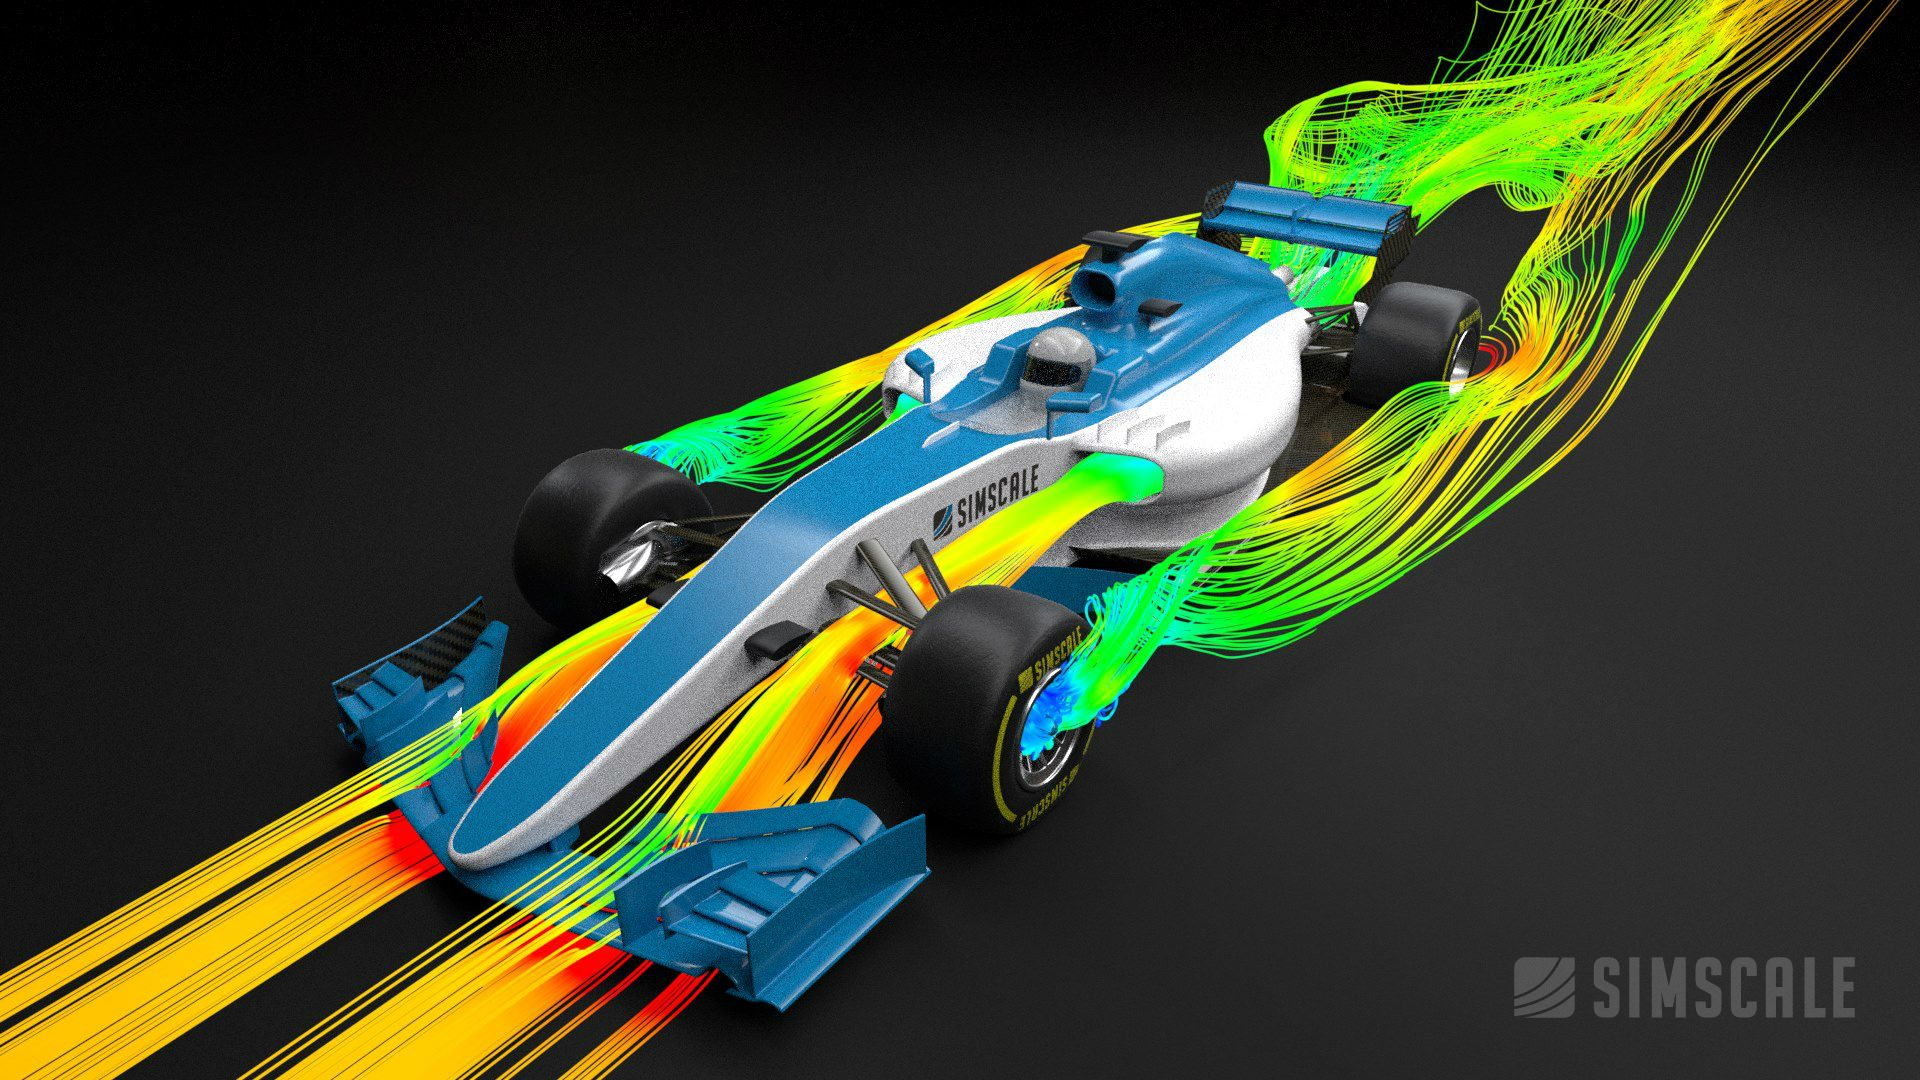 Pin by SimScale on Formula One / F1 | Formula one, Fluid